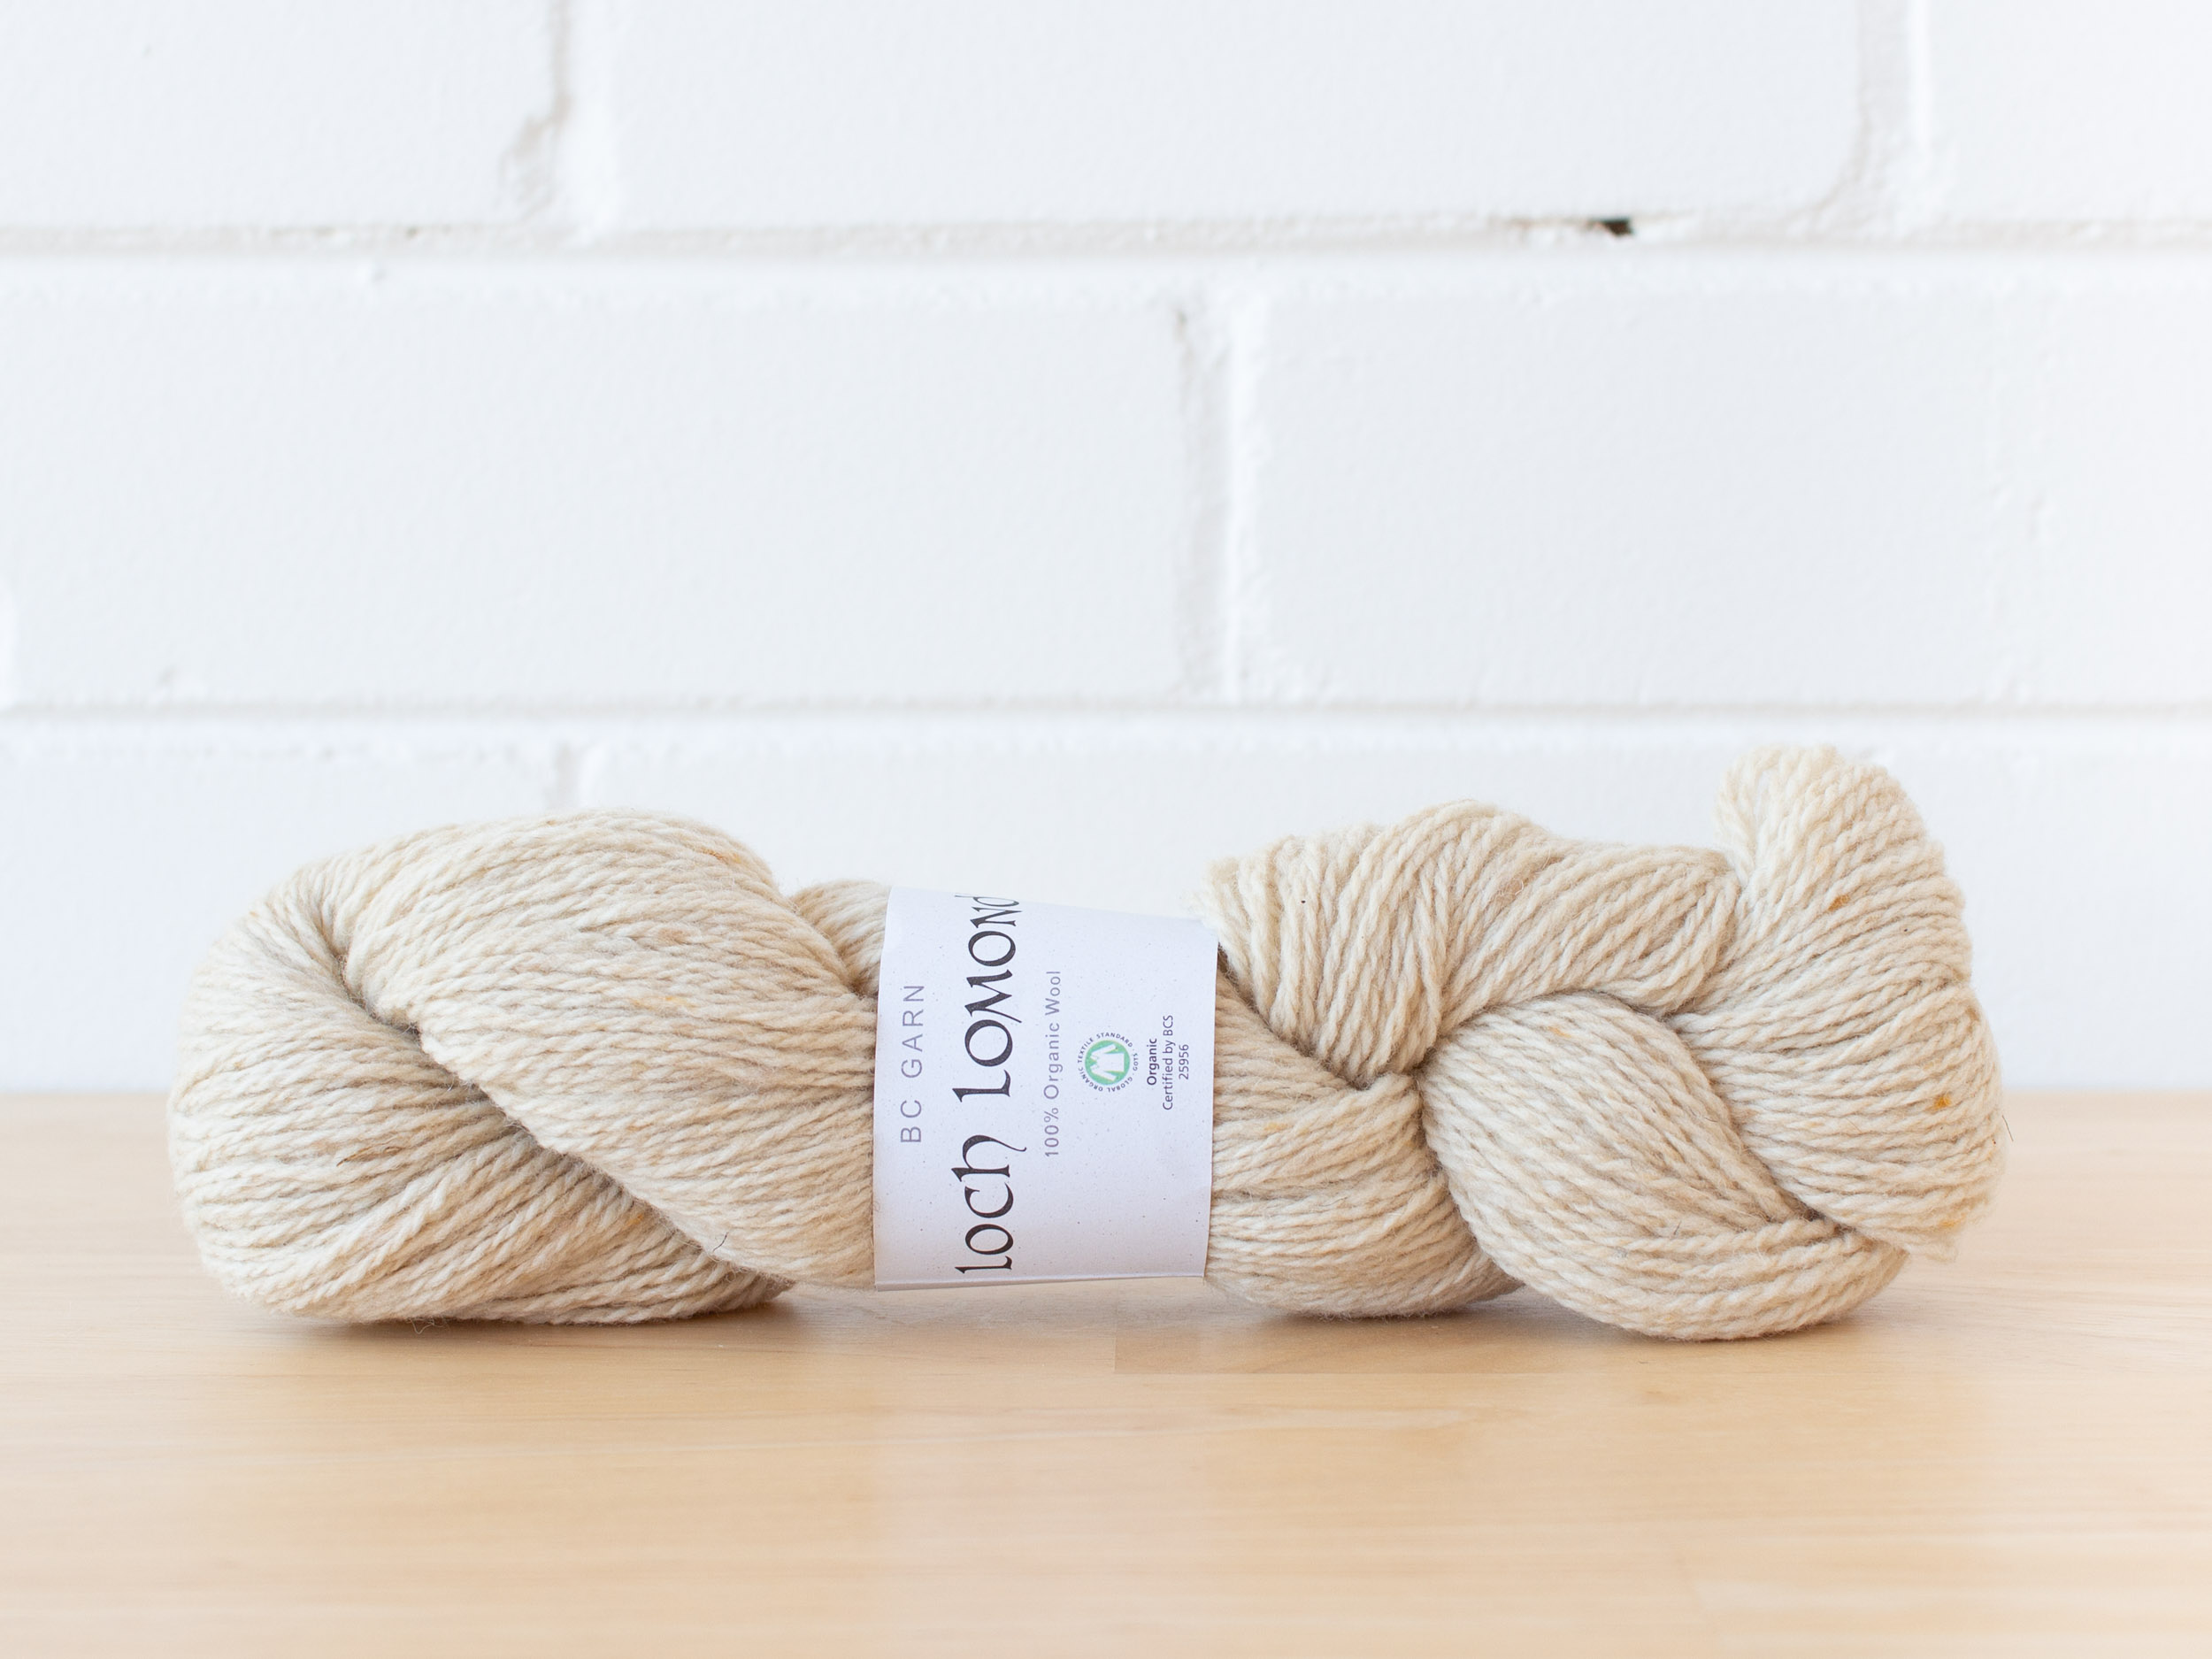 Loom & Spindle - Loch Lomond Bio - 13 Beige-2.jpg